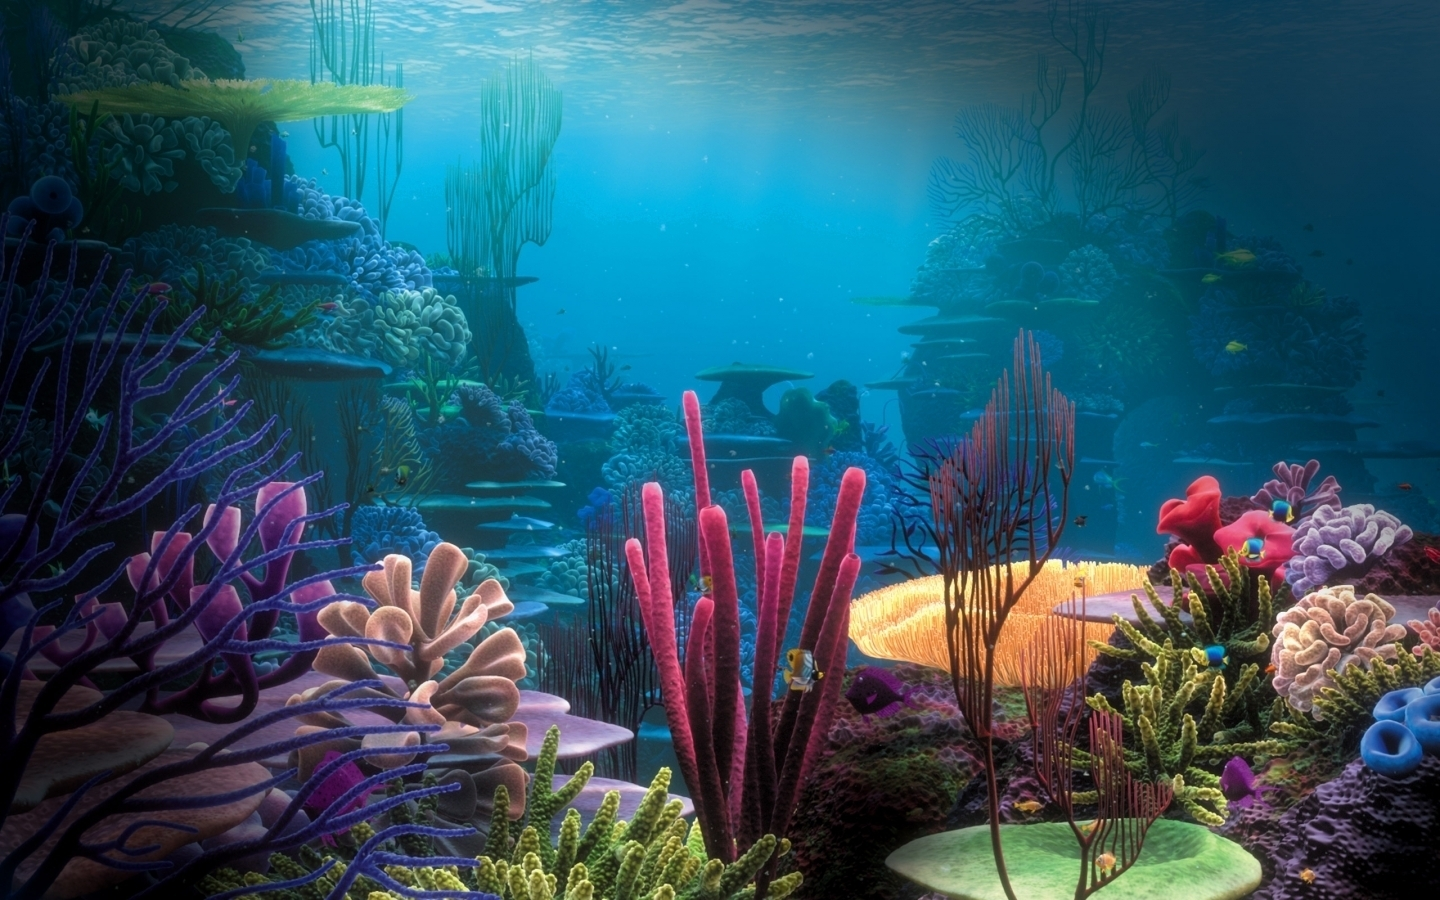 under the sea party | wallpaper, coral reefs and animal